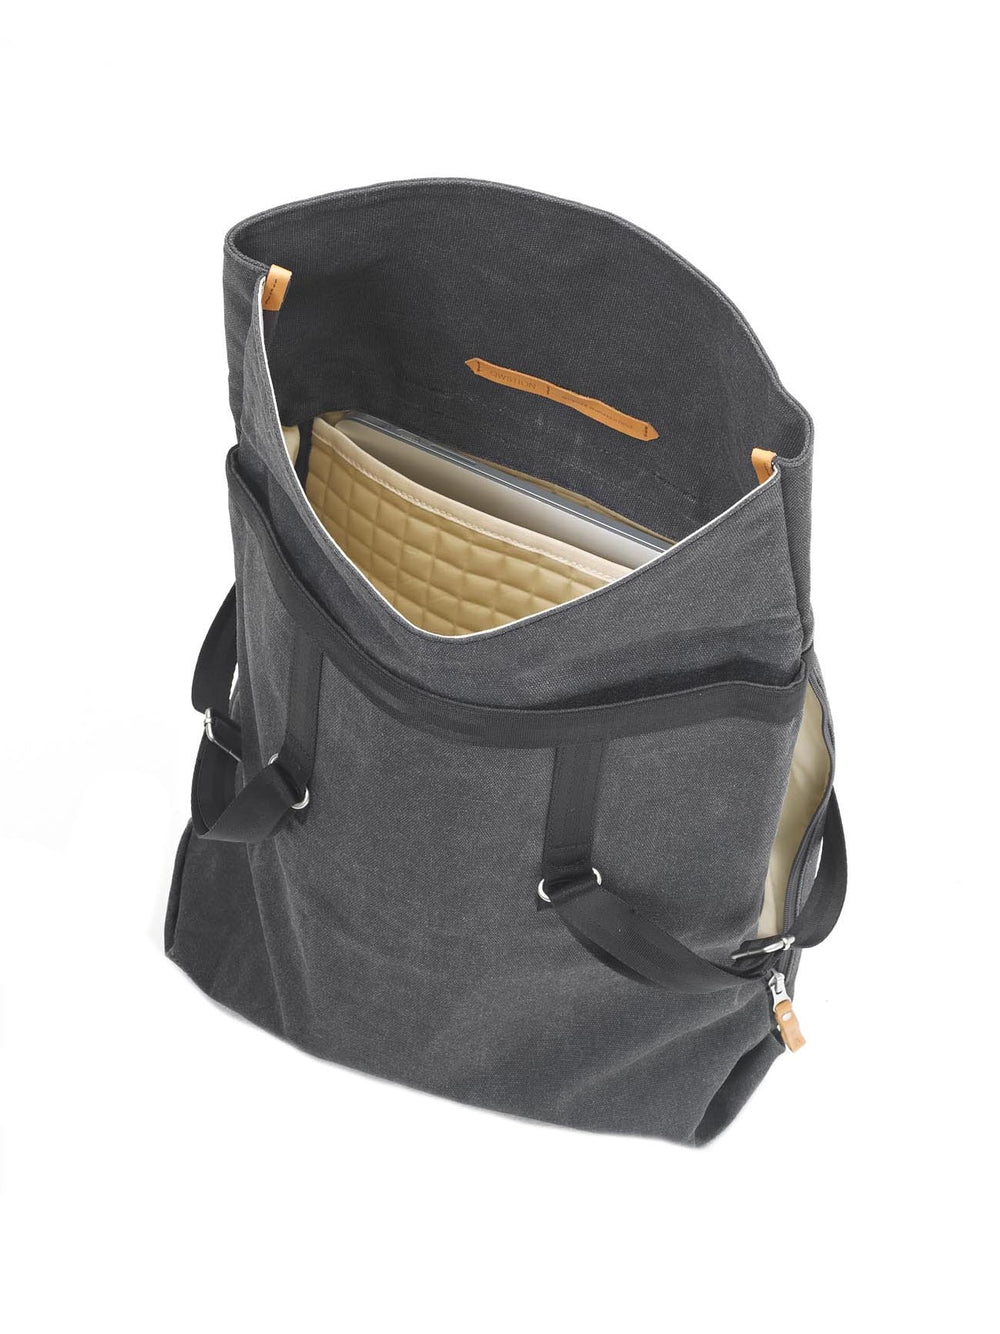 The spacious compartment of Qwstion Day Tote bag